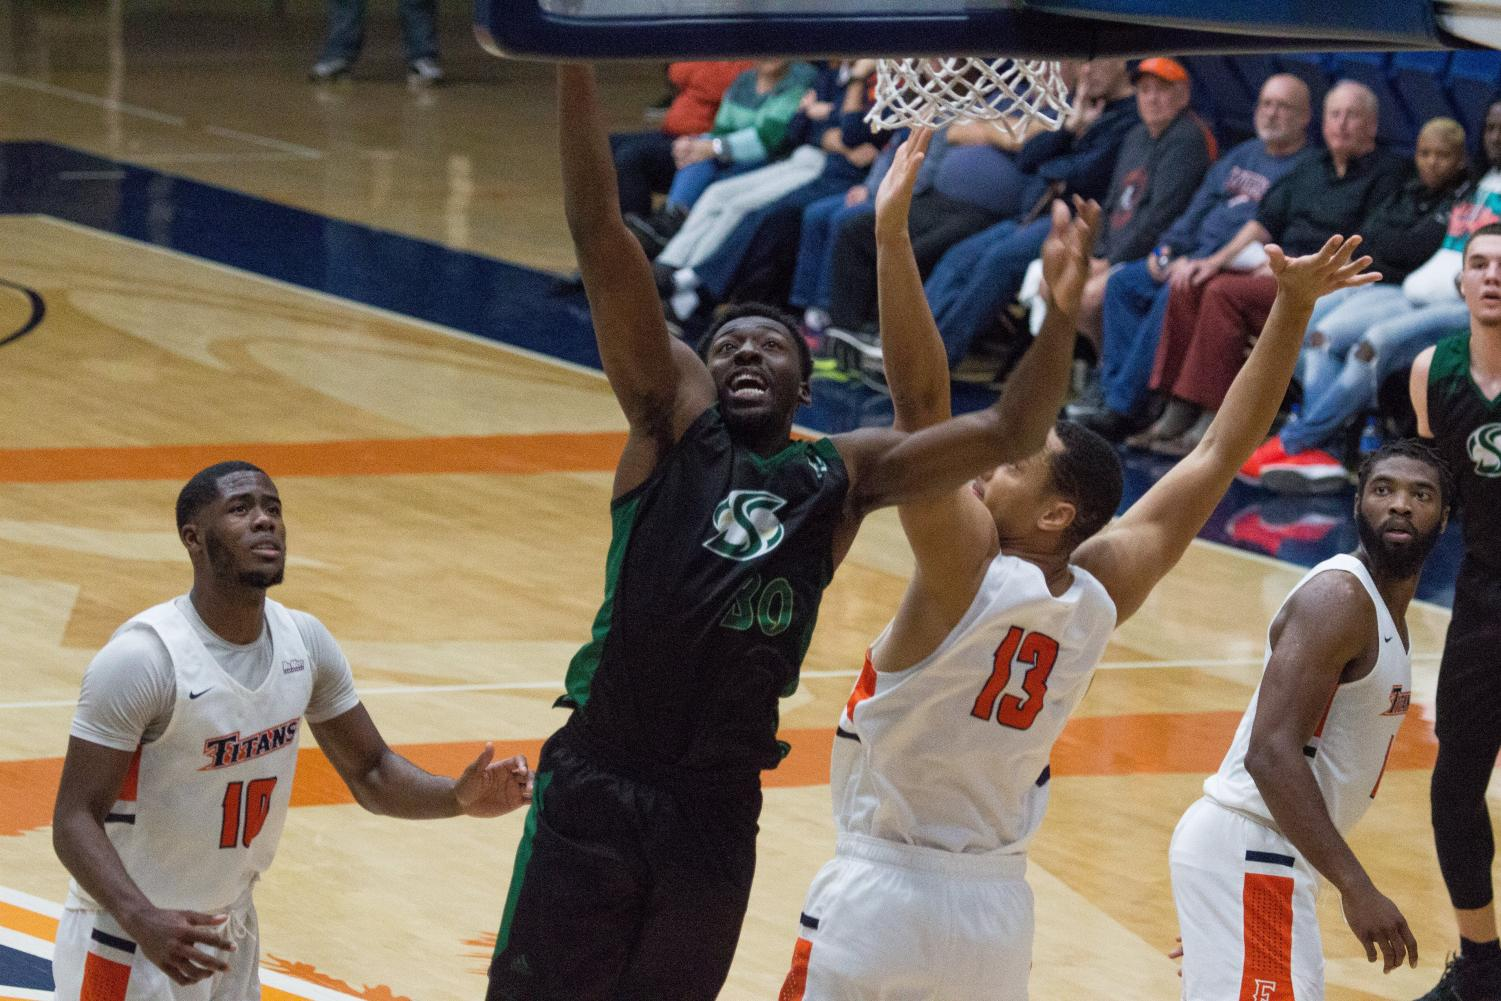 Sac State senior center Joshua Patton goes for a layup against Cal State Fullerton on Saturday, Dec. 7 at Titan Gym. The Hornets defeated the Titans 62-59 on the road to improve to 6-1 on the season.